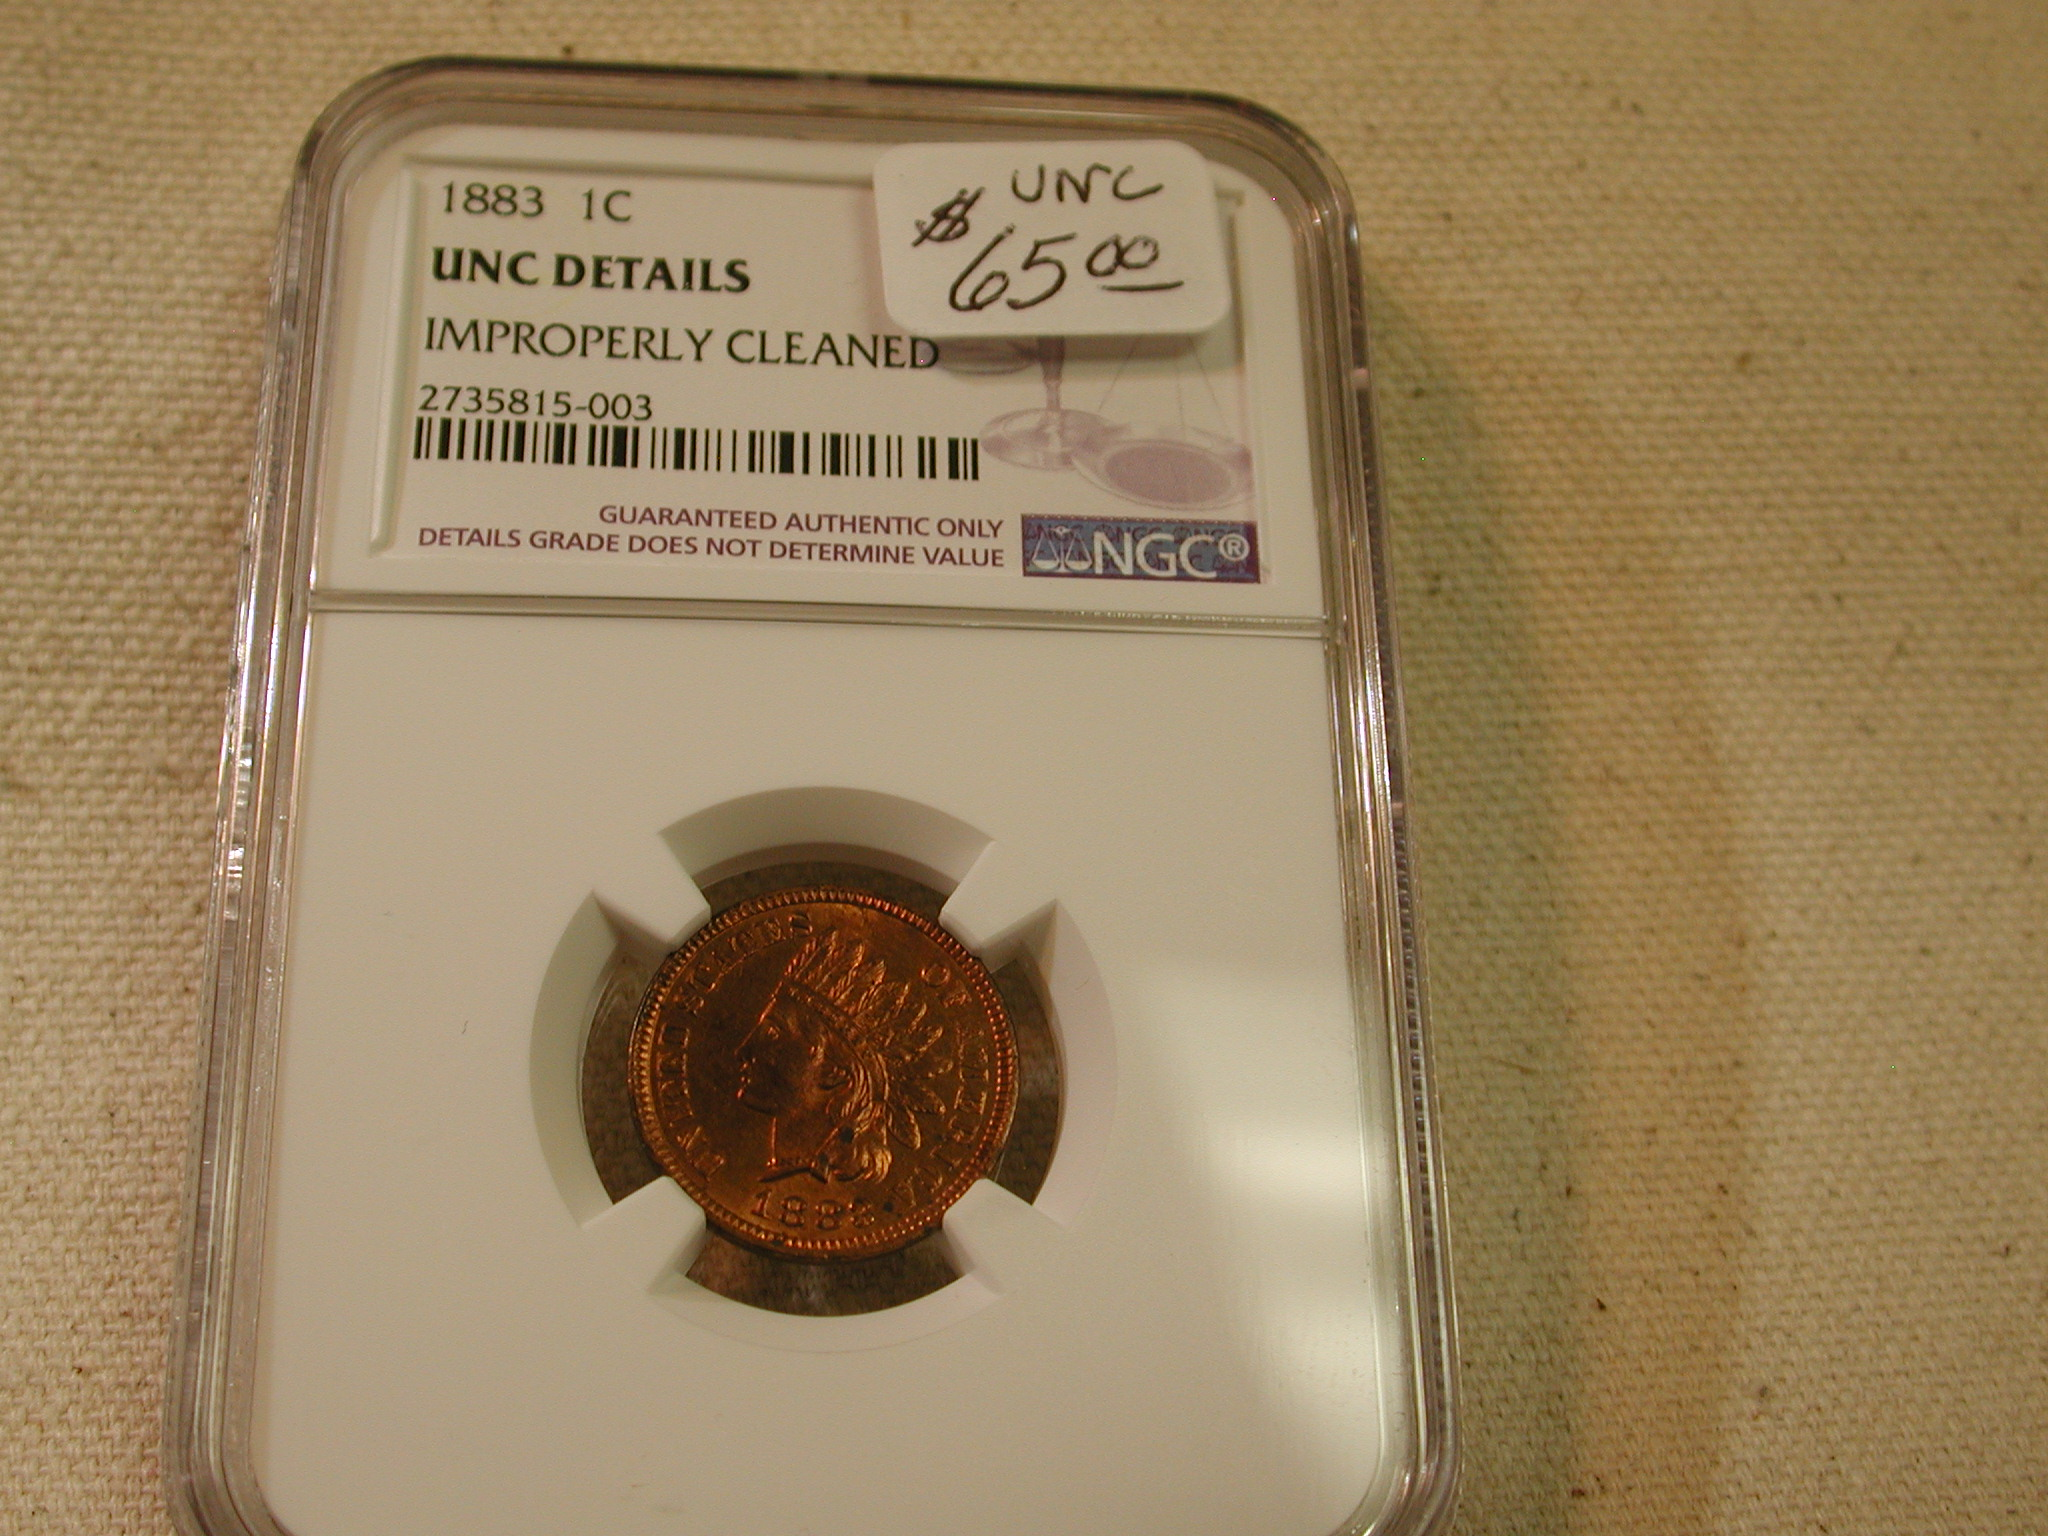 1883 1C UNC Details Improperly Cleaned NGC